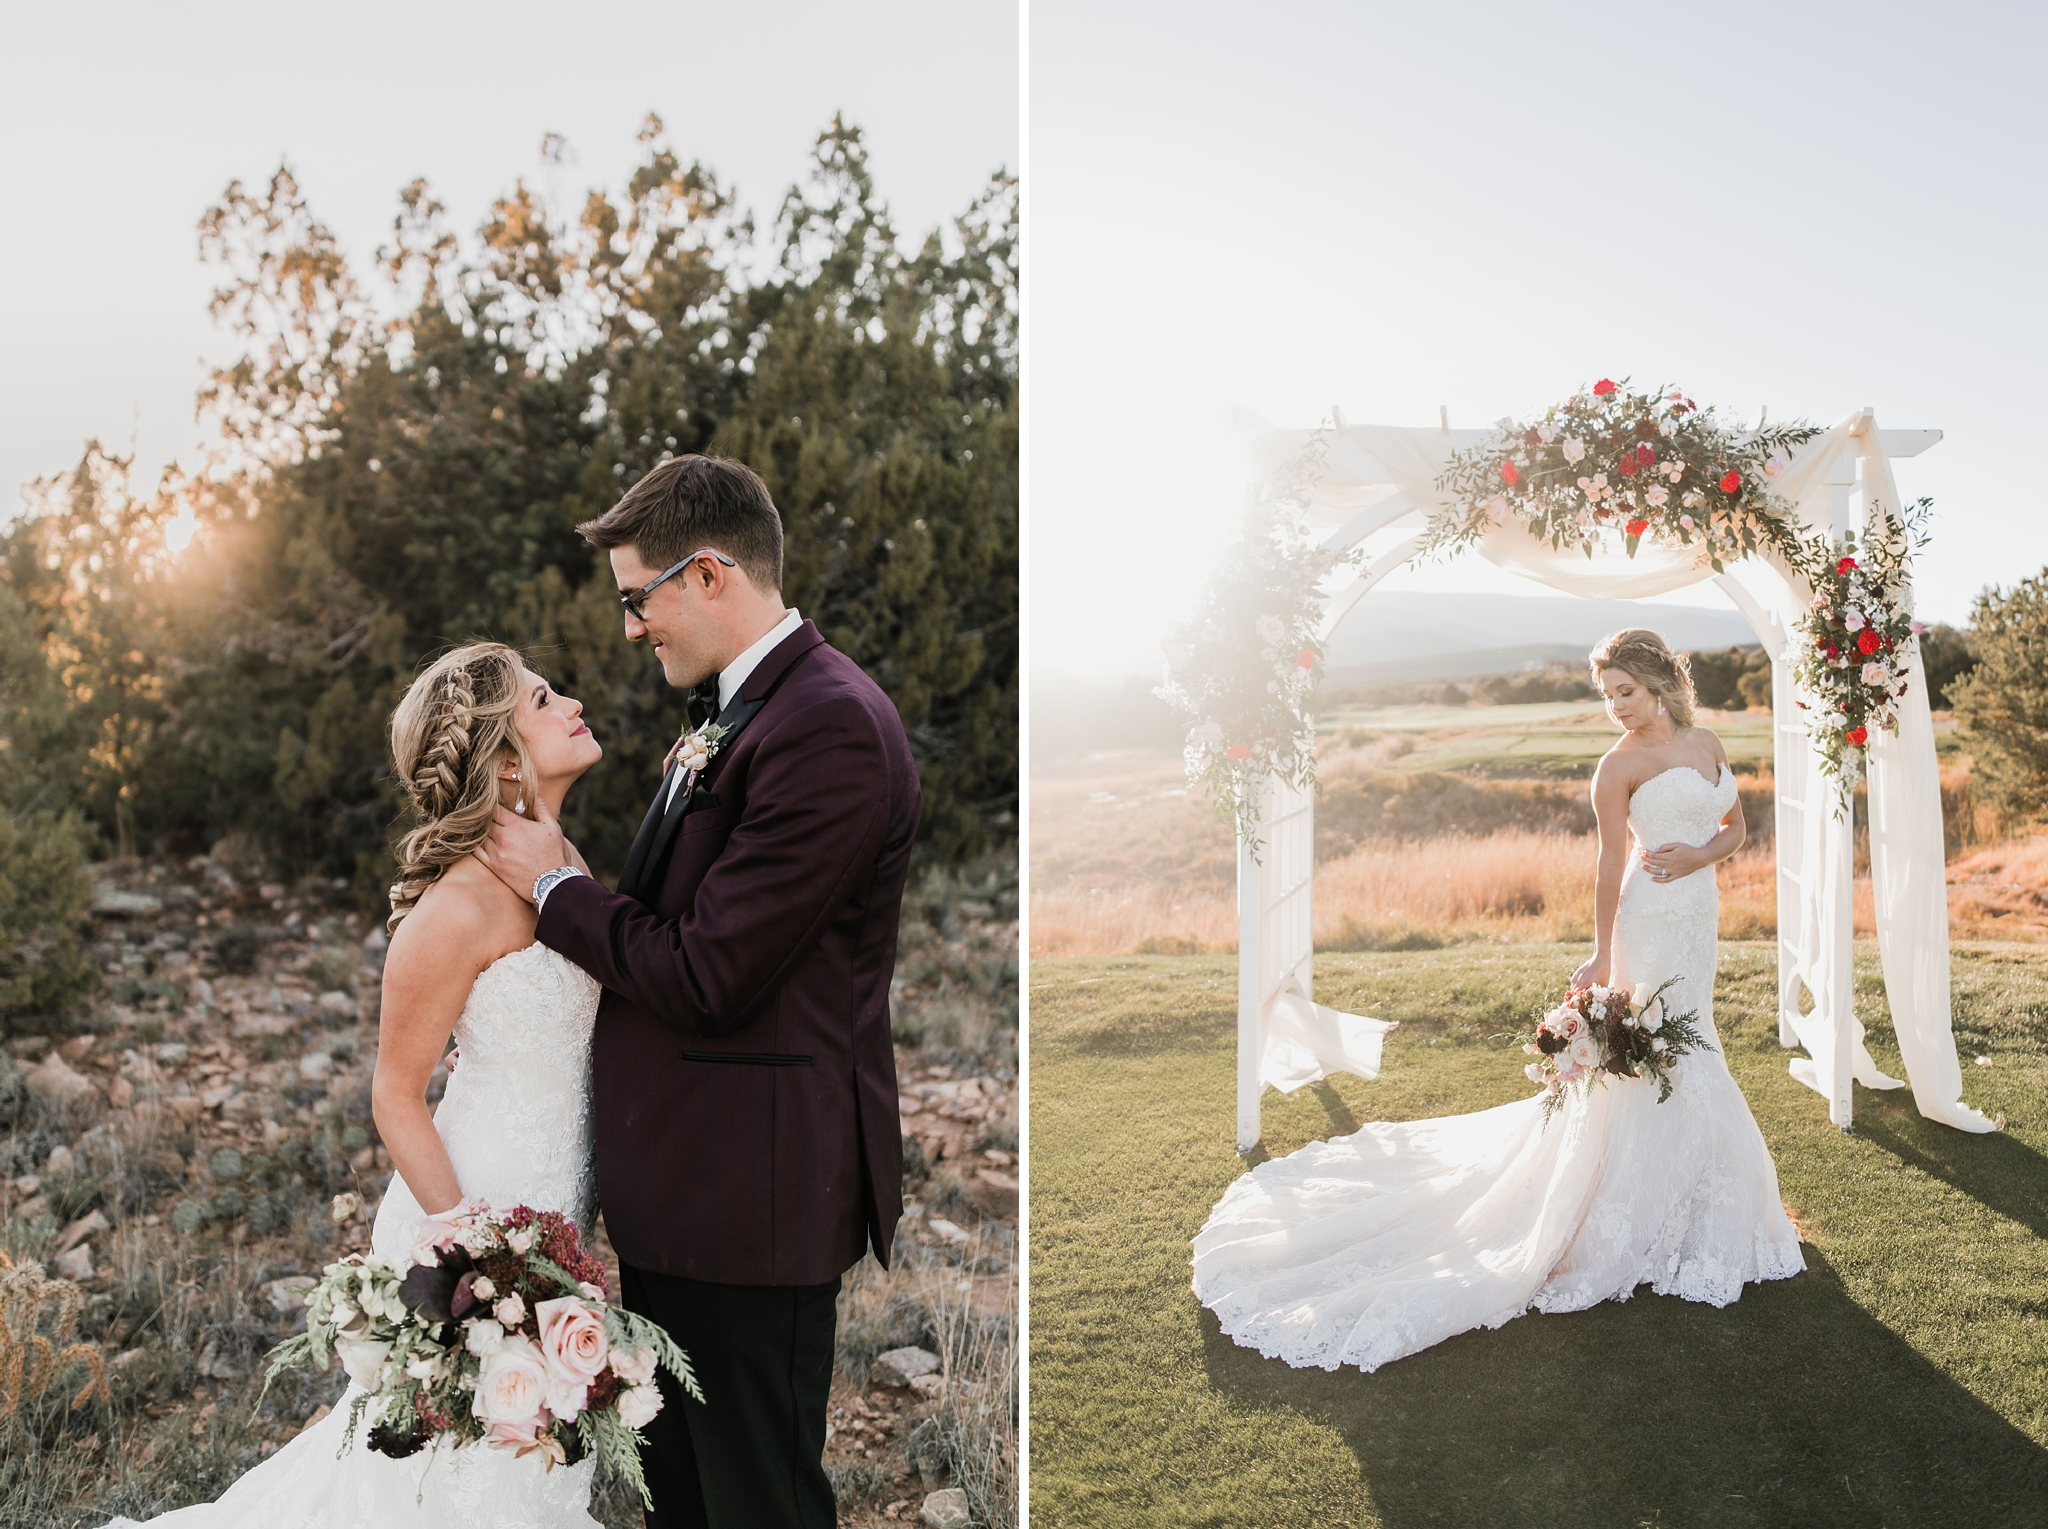 Alicia+lucia+photography+-+albuquerque+wedding+photographer+-+santa+fe+wedding+photography+-+new+mexico+wedding+photographer+-+new+mexico+wedding+-+wedding+makeup+-+makeup+artist+-+wedding+makeup+artist+-+bridal+makeup_0036.jpg